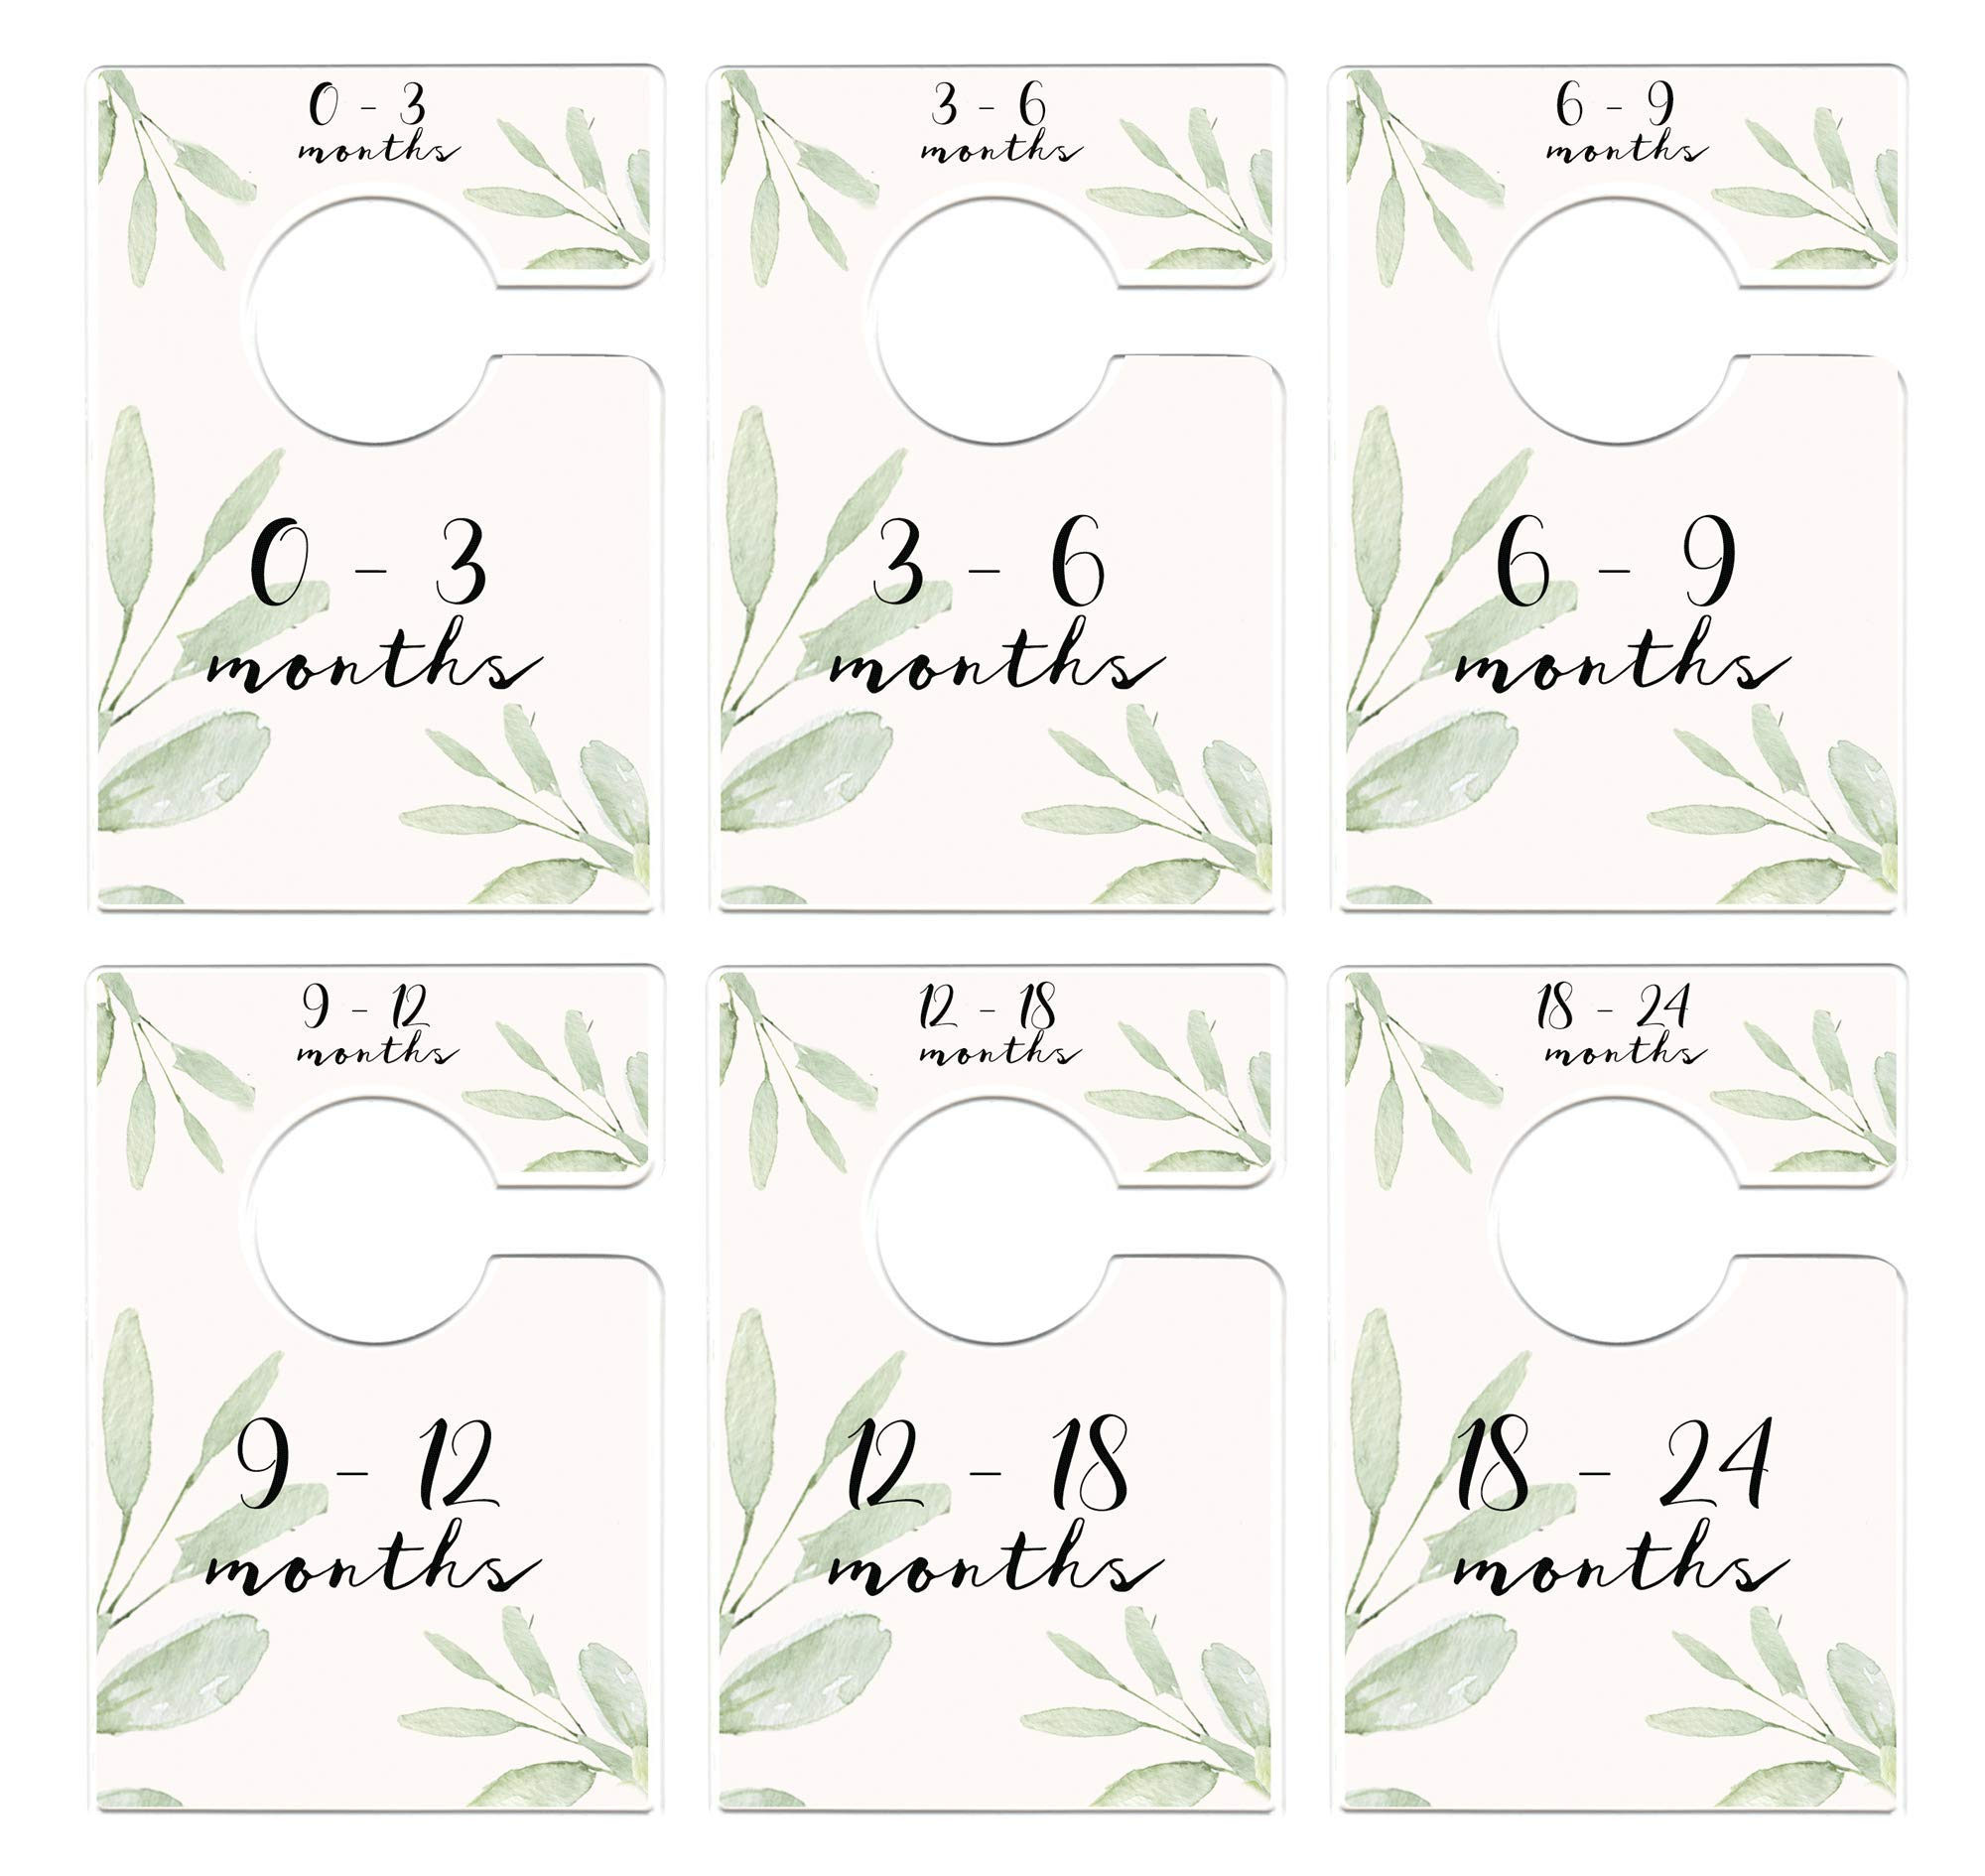 Mumsy Goose Nursery Closet Dividers Greenery Baby Clothes Dividers Botanical Closet Organizers by Mumsy Goose